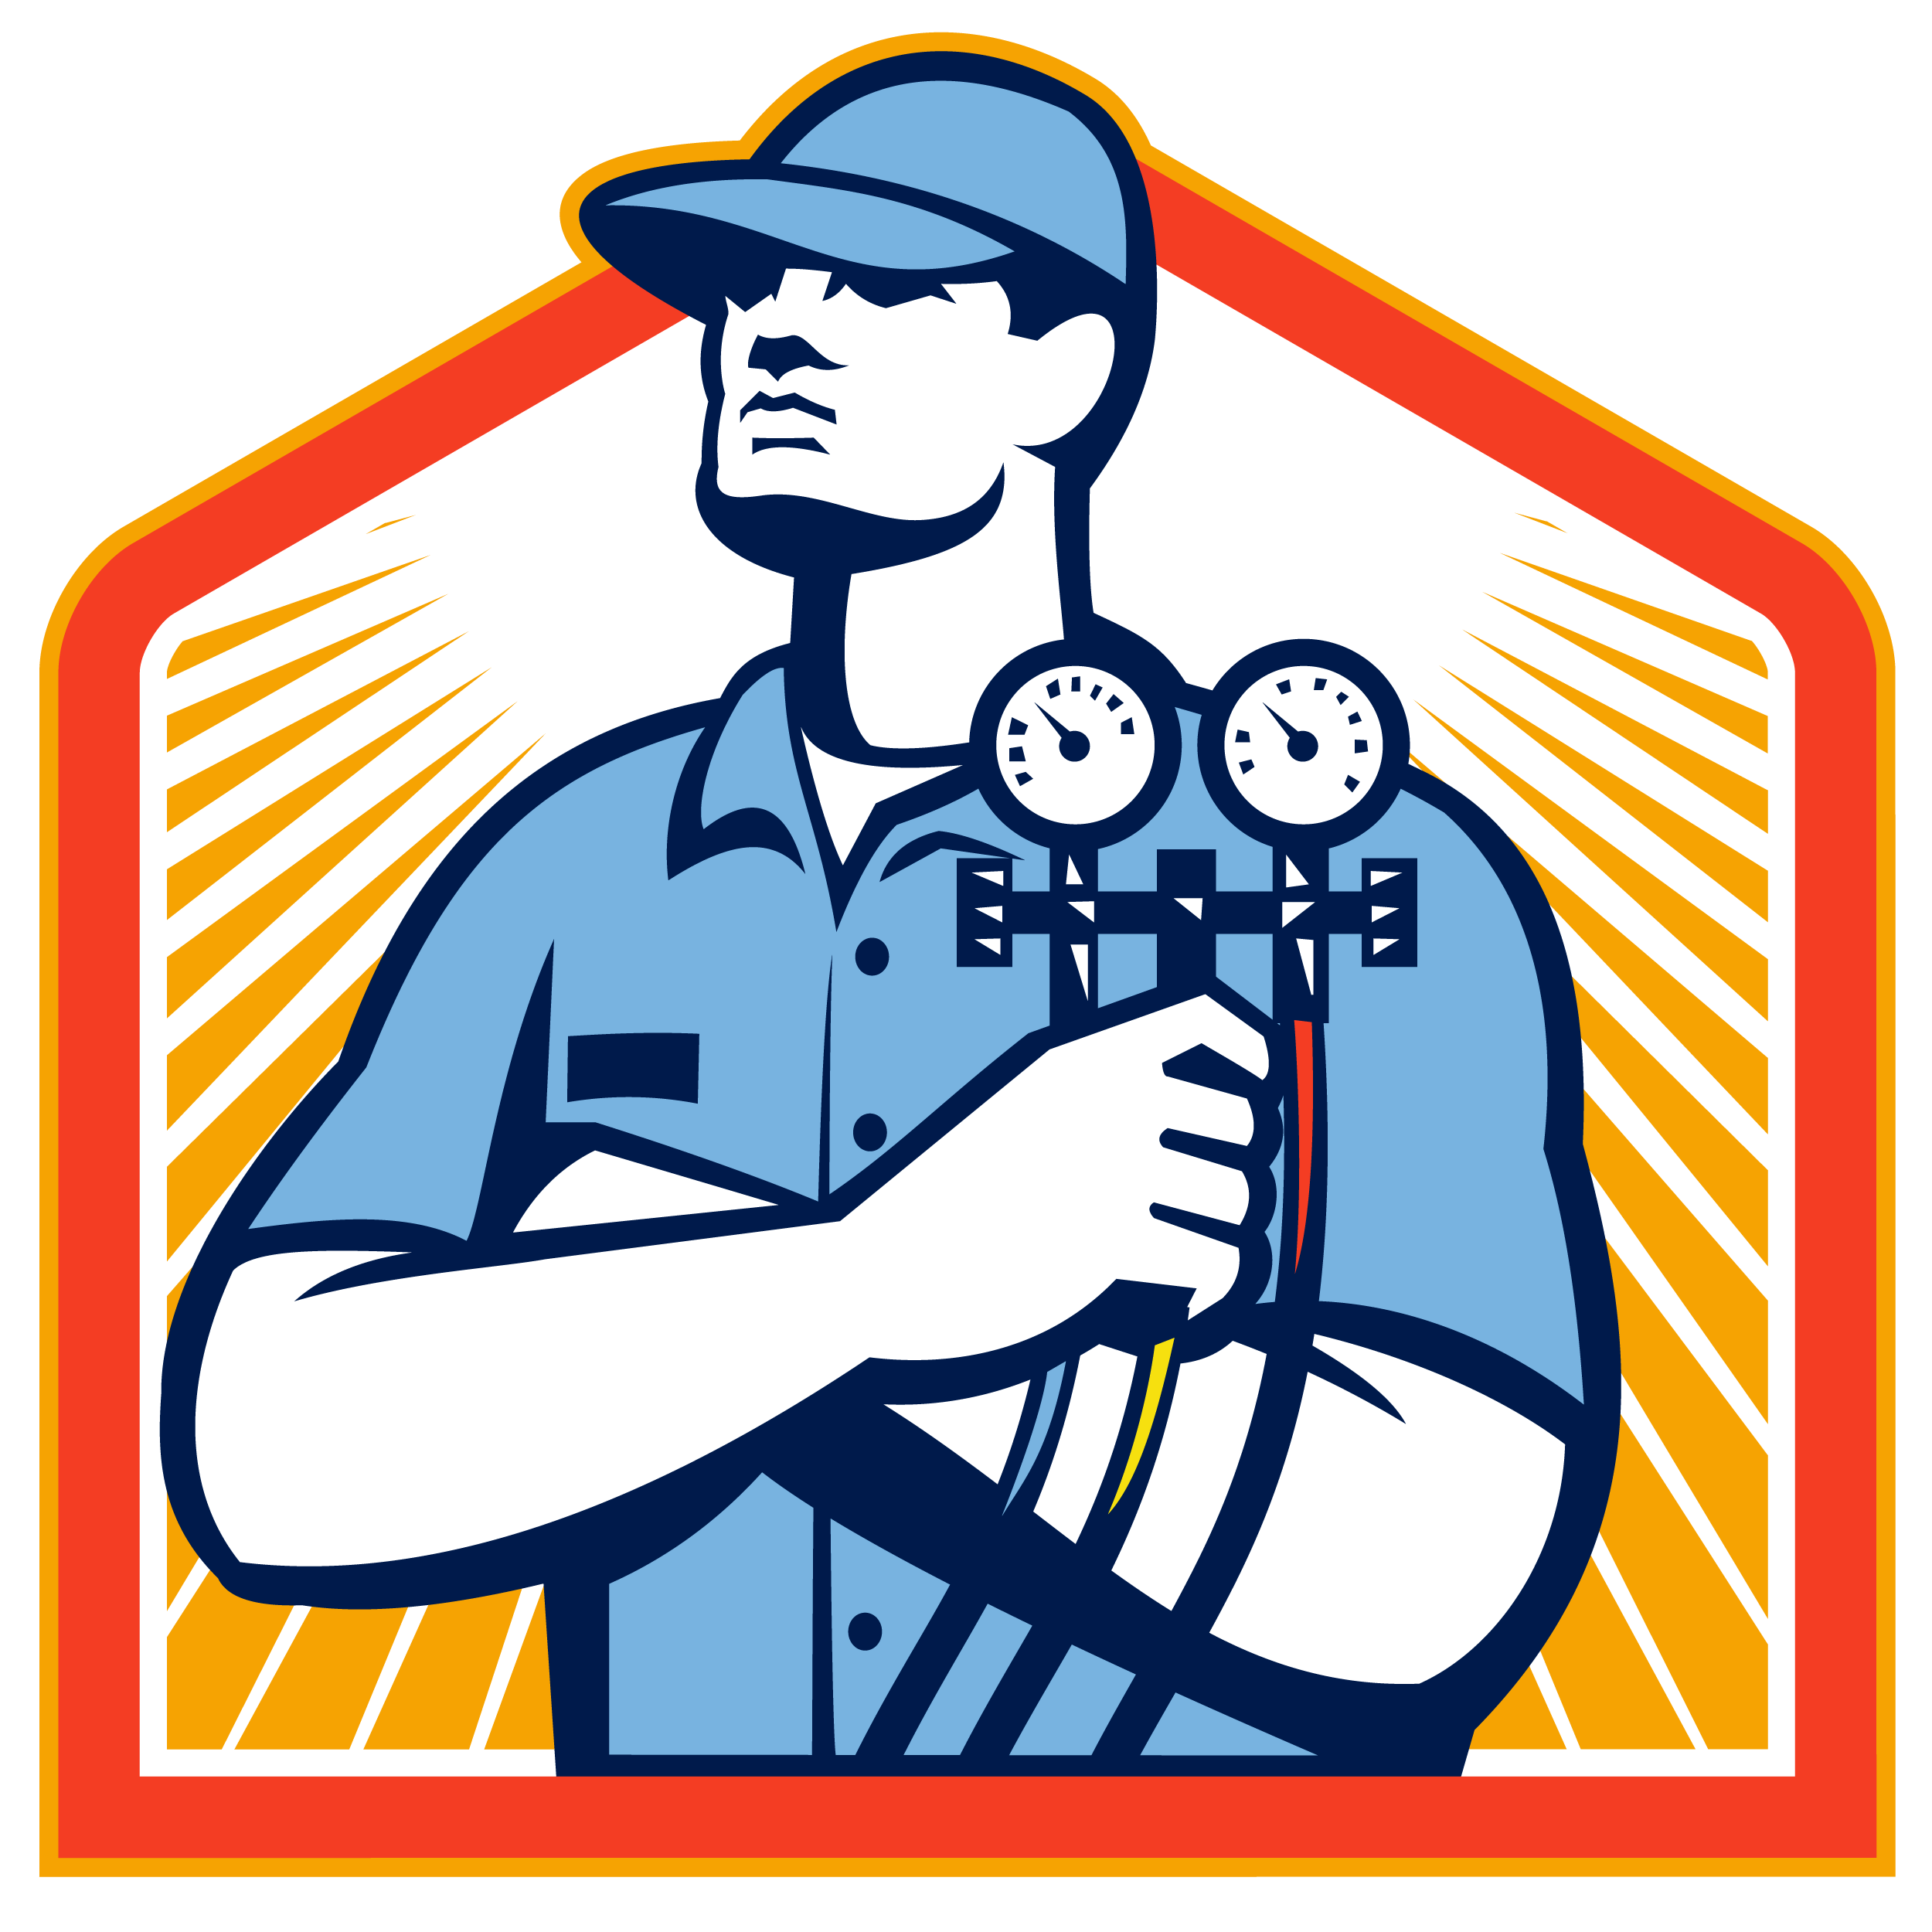 Preston\'s Air Conditioning And Appliance LLC on Twitter.